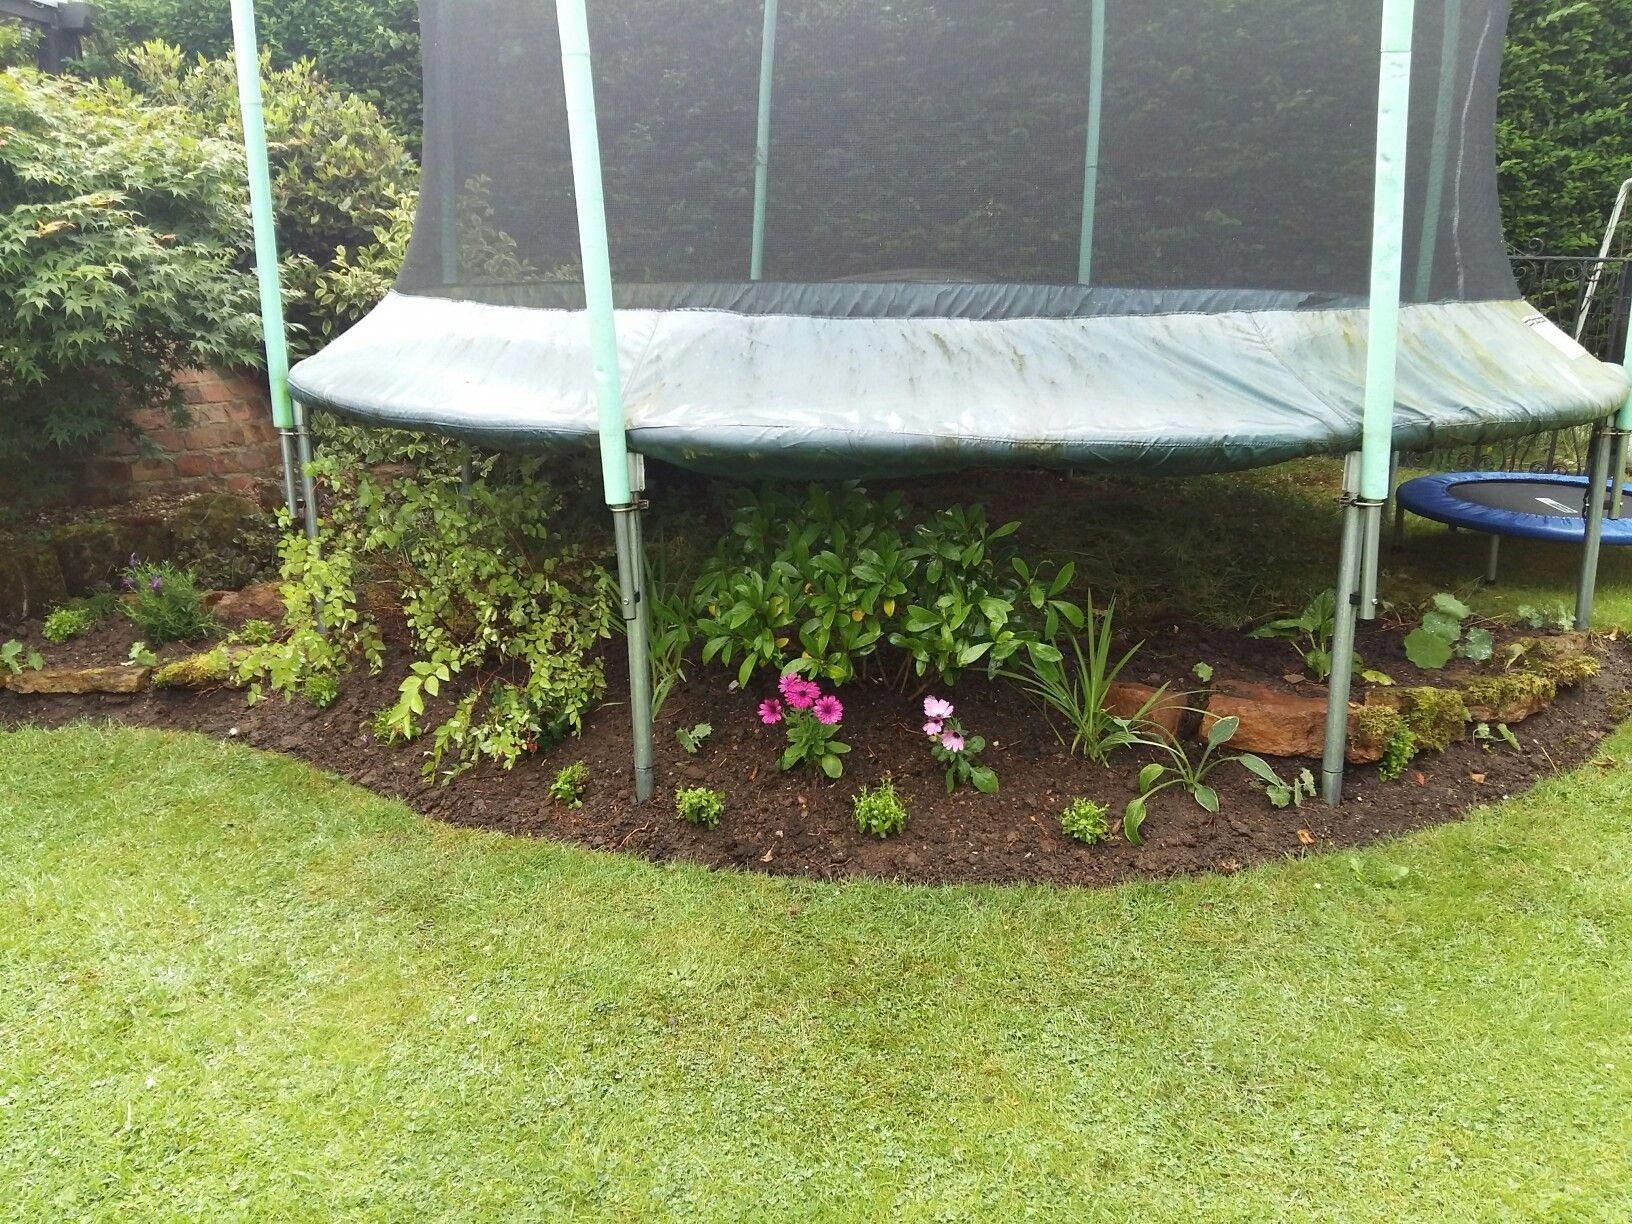 Planting Under A Trampoline Trampolinechickencoop Trampolinefort Backyard Trampoline Backyard Backyard Ideas For Small Yards